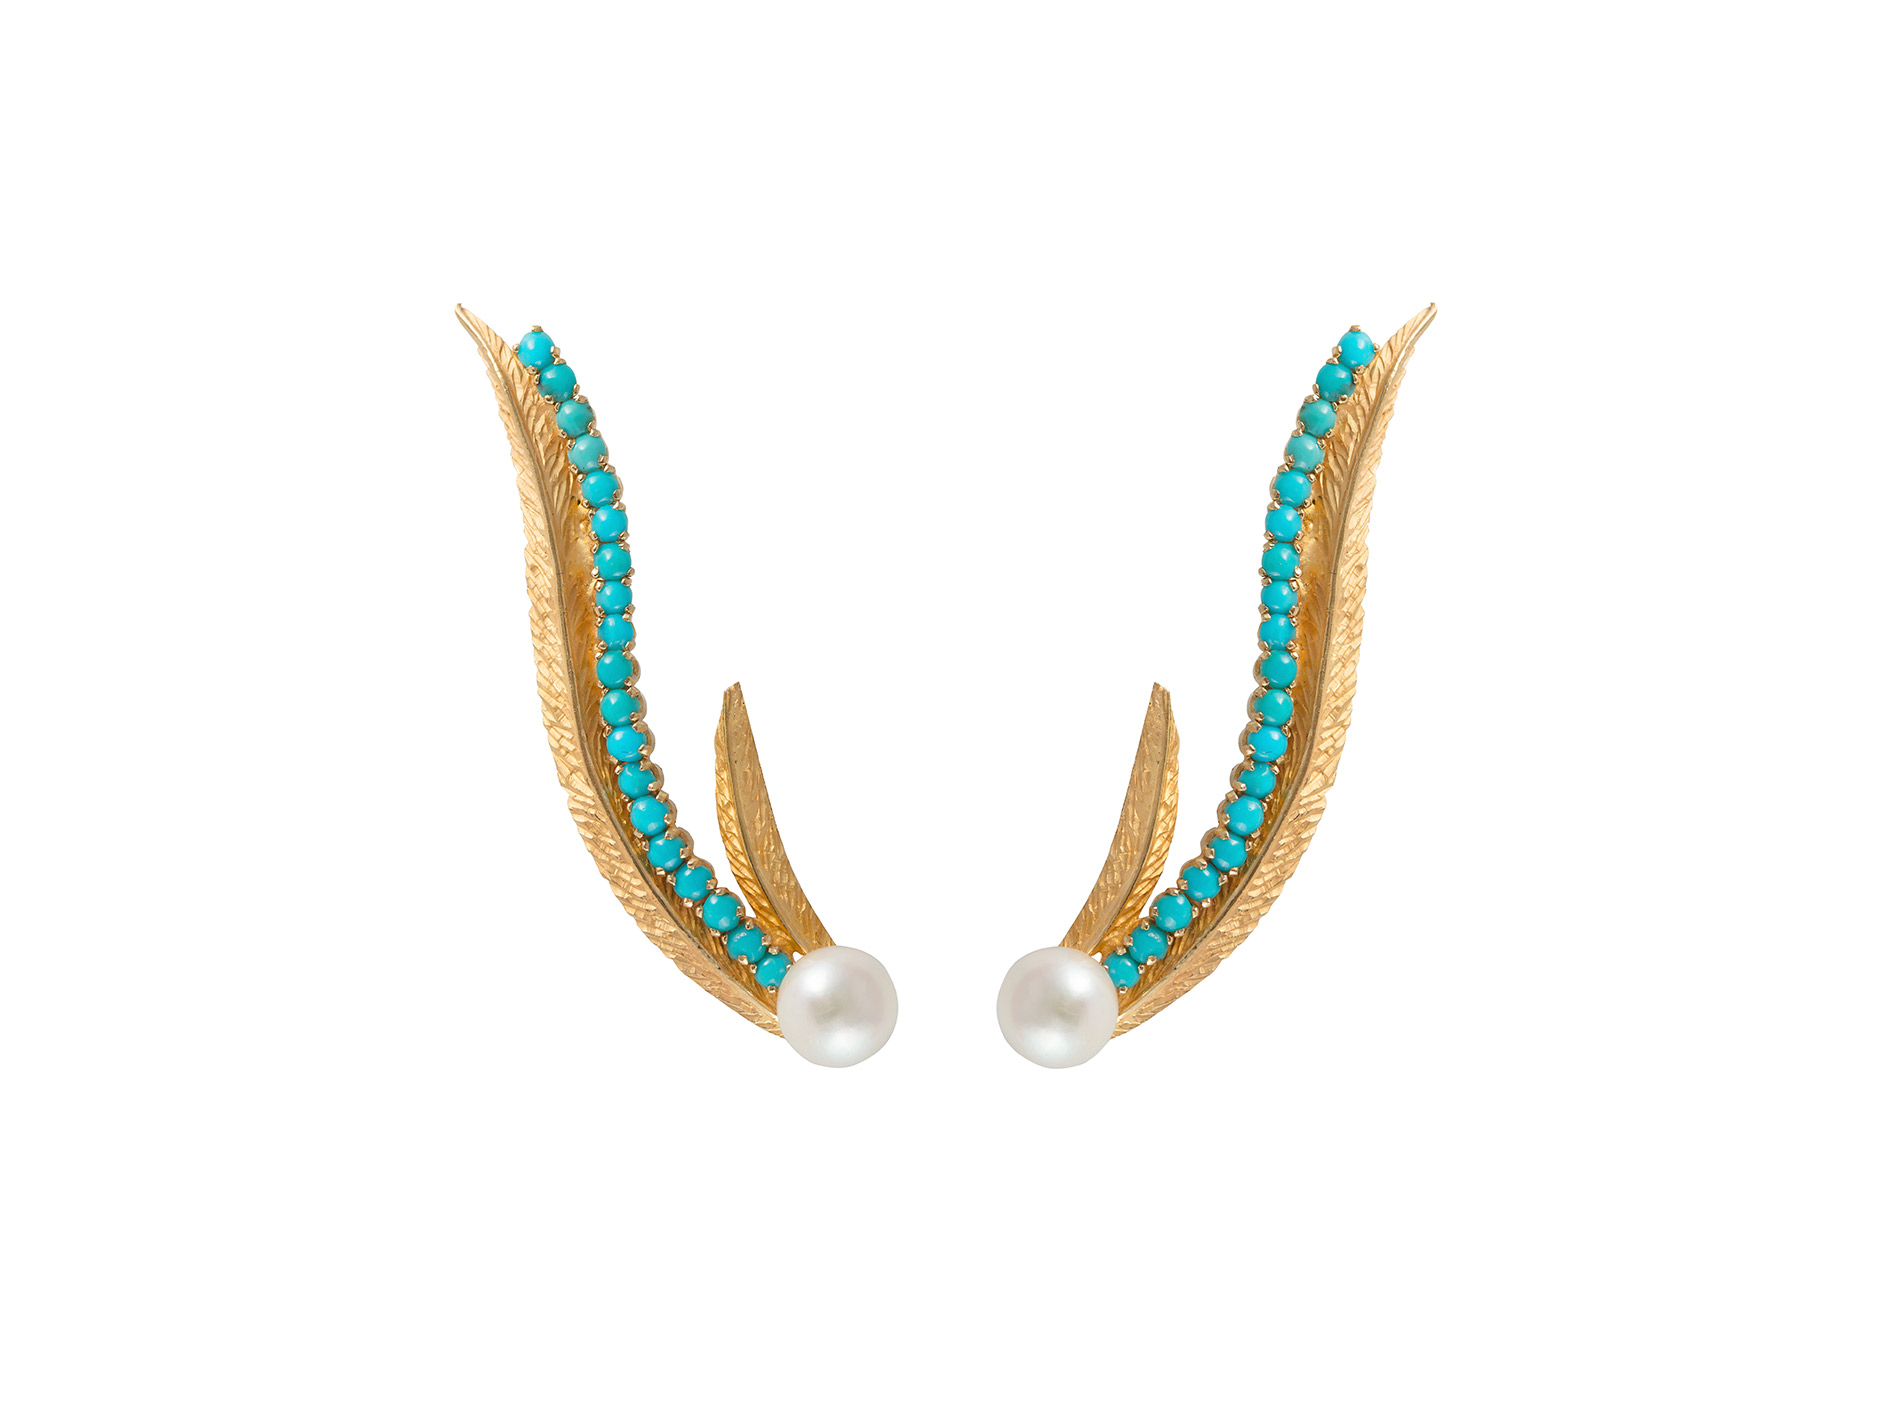 Phoenix Heritage Earrings – Textured Yellow Gold Turquoise and Pearl by Daou Jewellery on curated-crowd.com